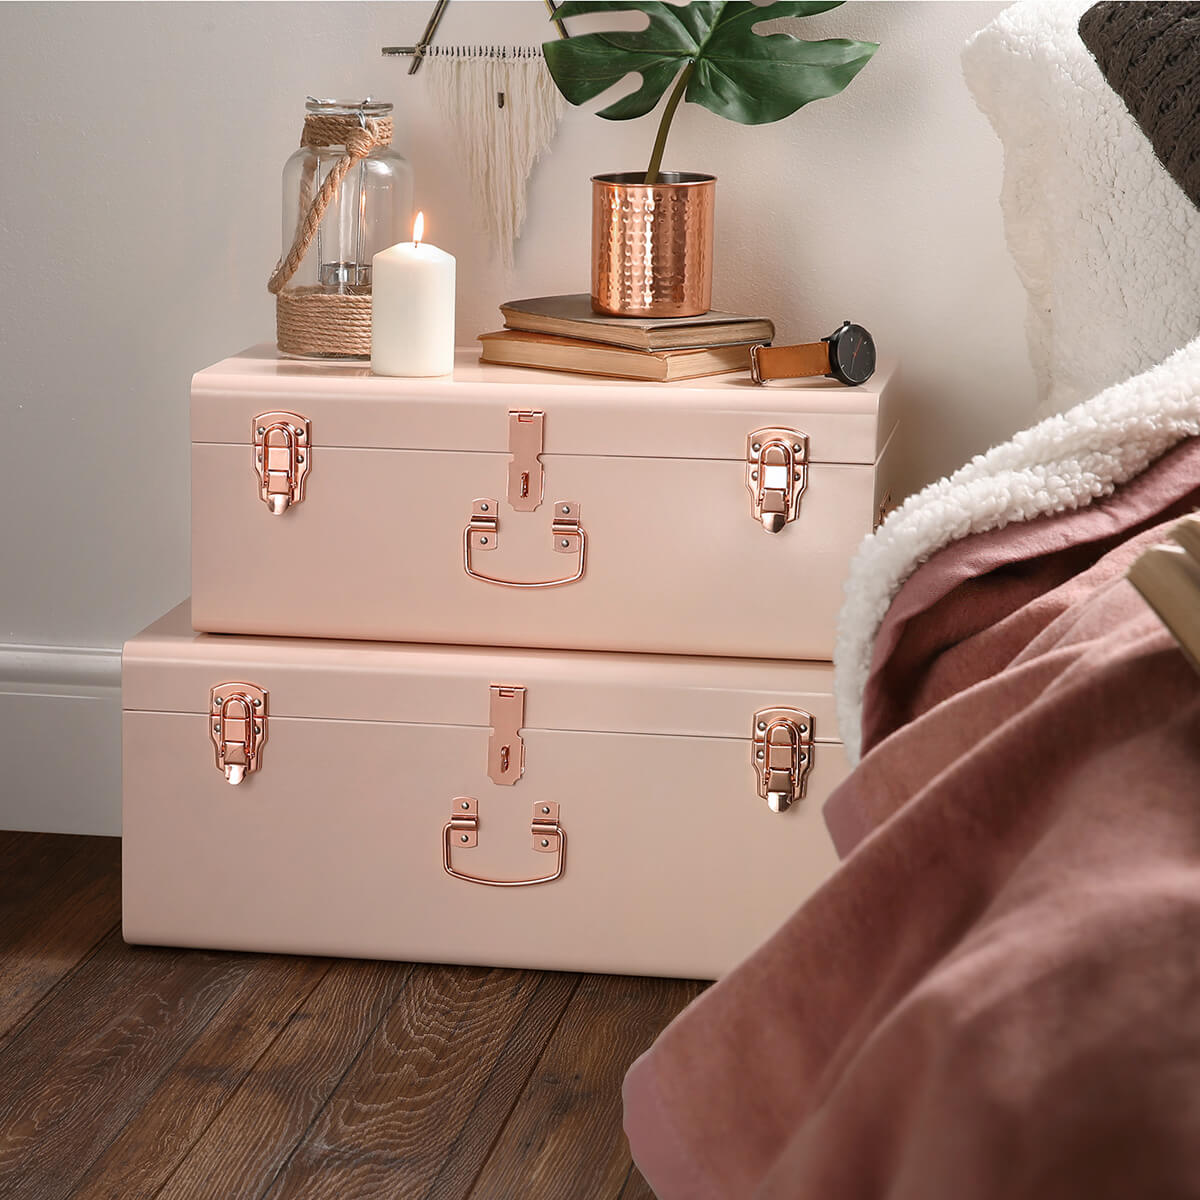 Blushing Tourister Stackable Bedside Luggage Trunks